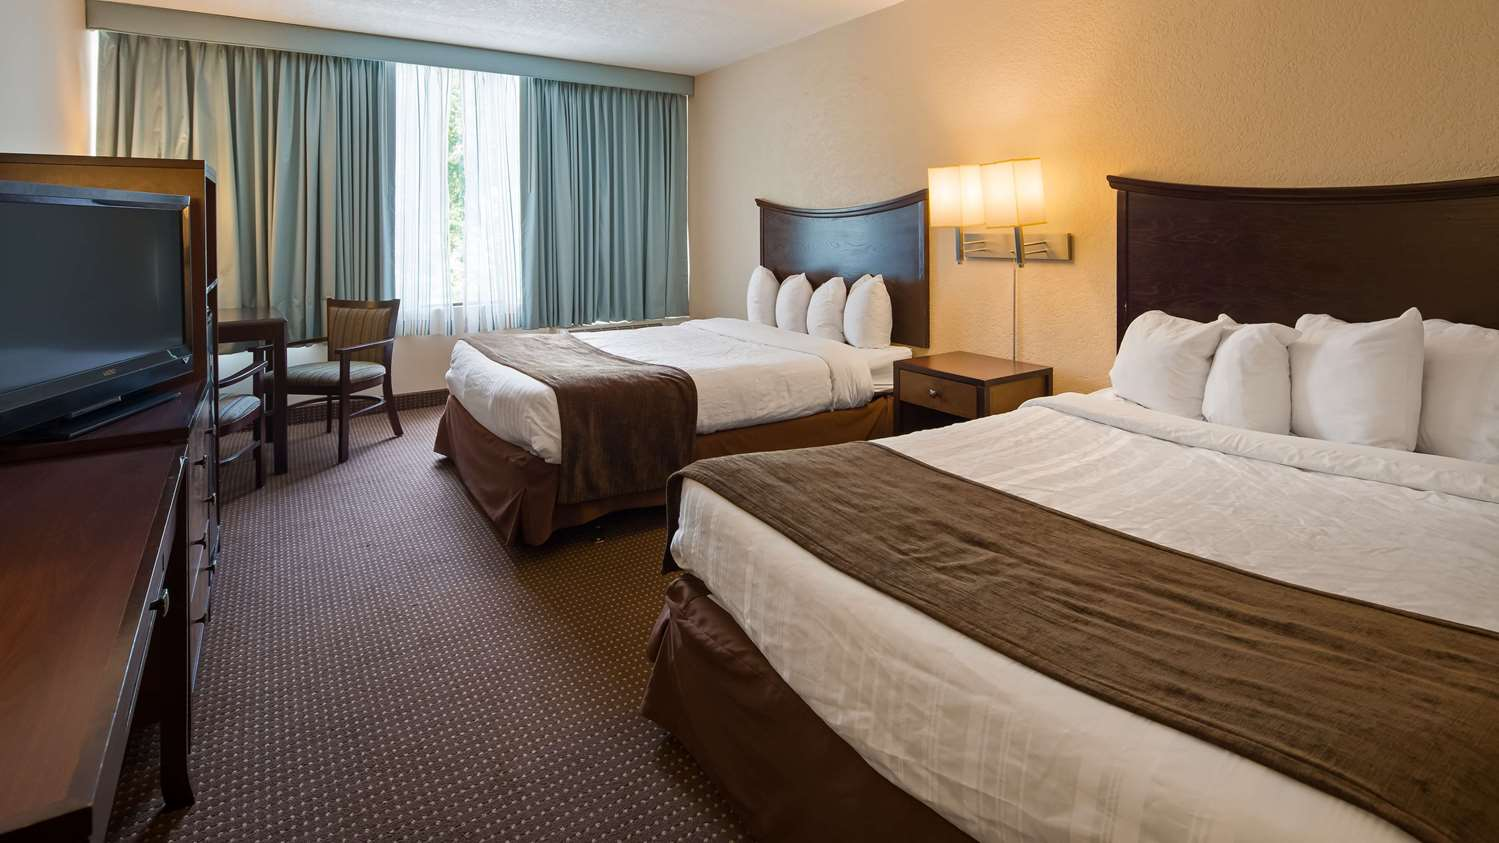 Room - SureStay Plus Hotel by Best Western Airport Albany